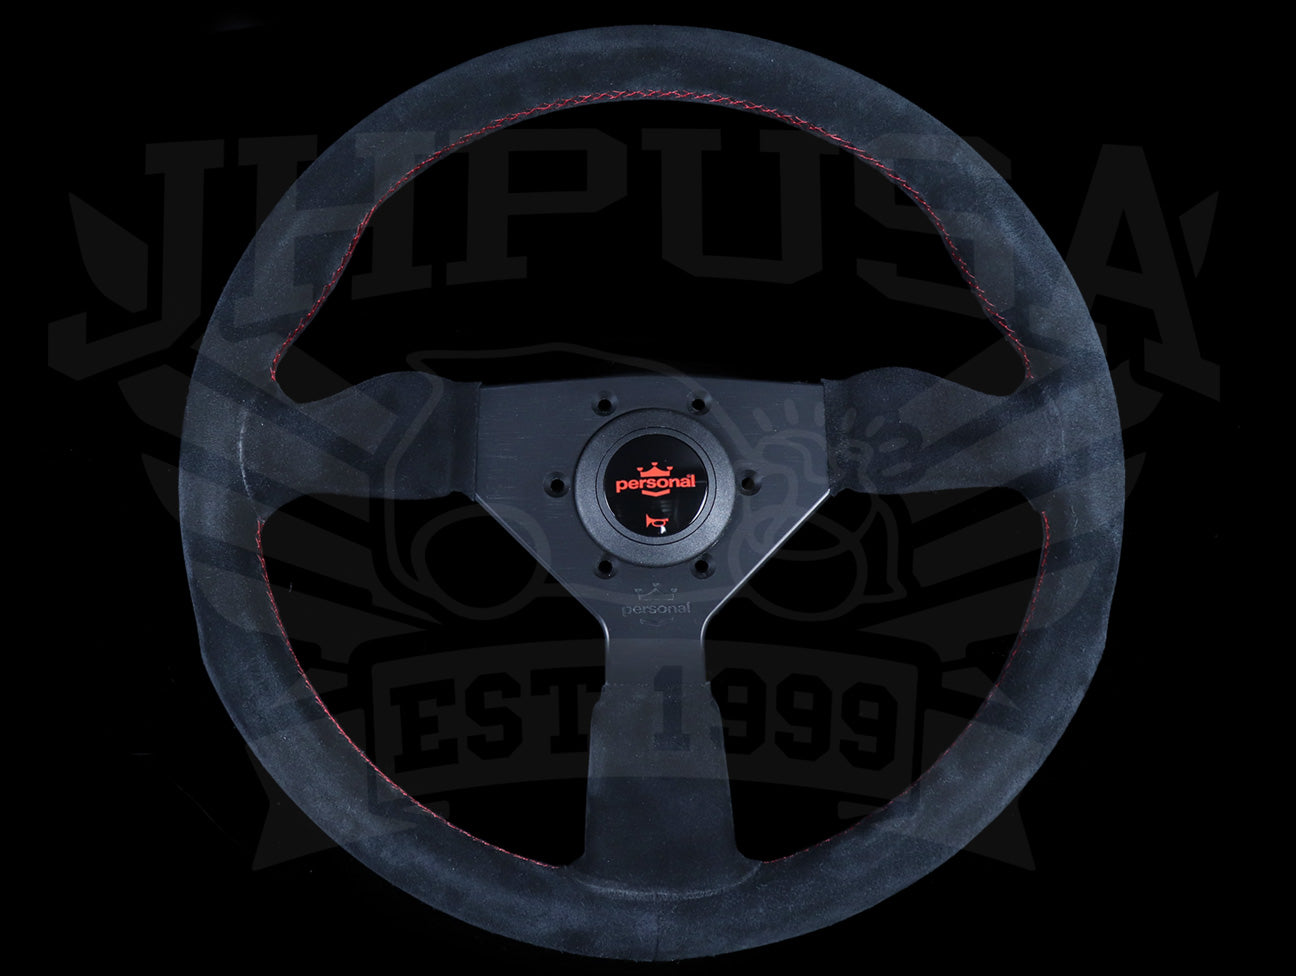 Personal Grinta 350mm Steering Wheel - Black Suede / Red Stitch